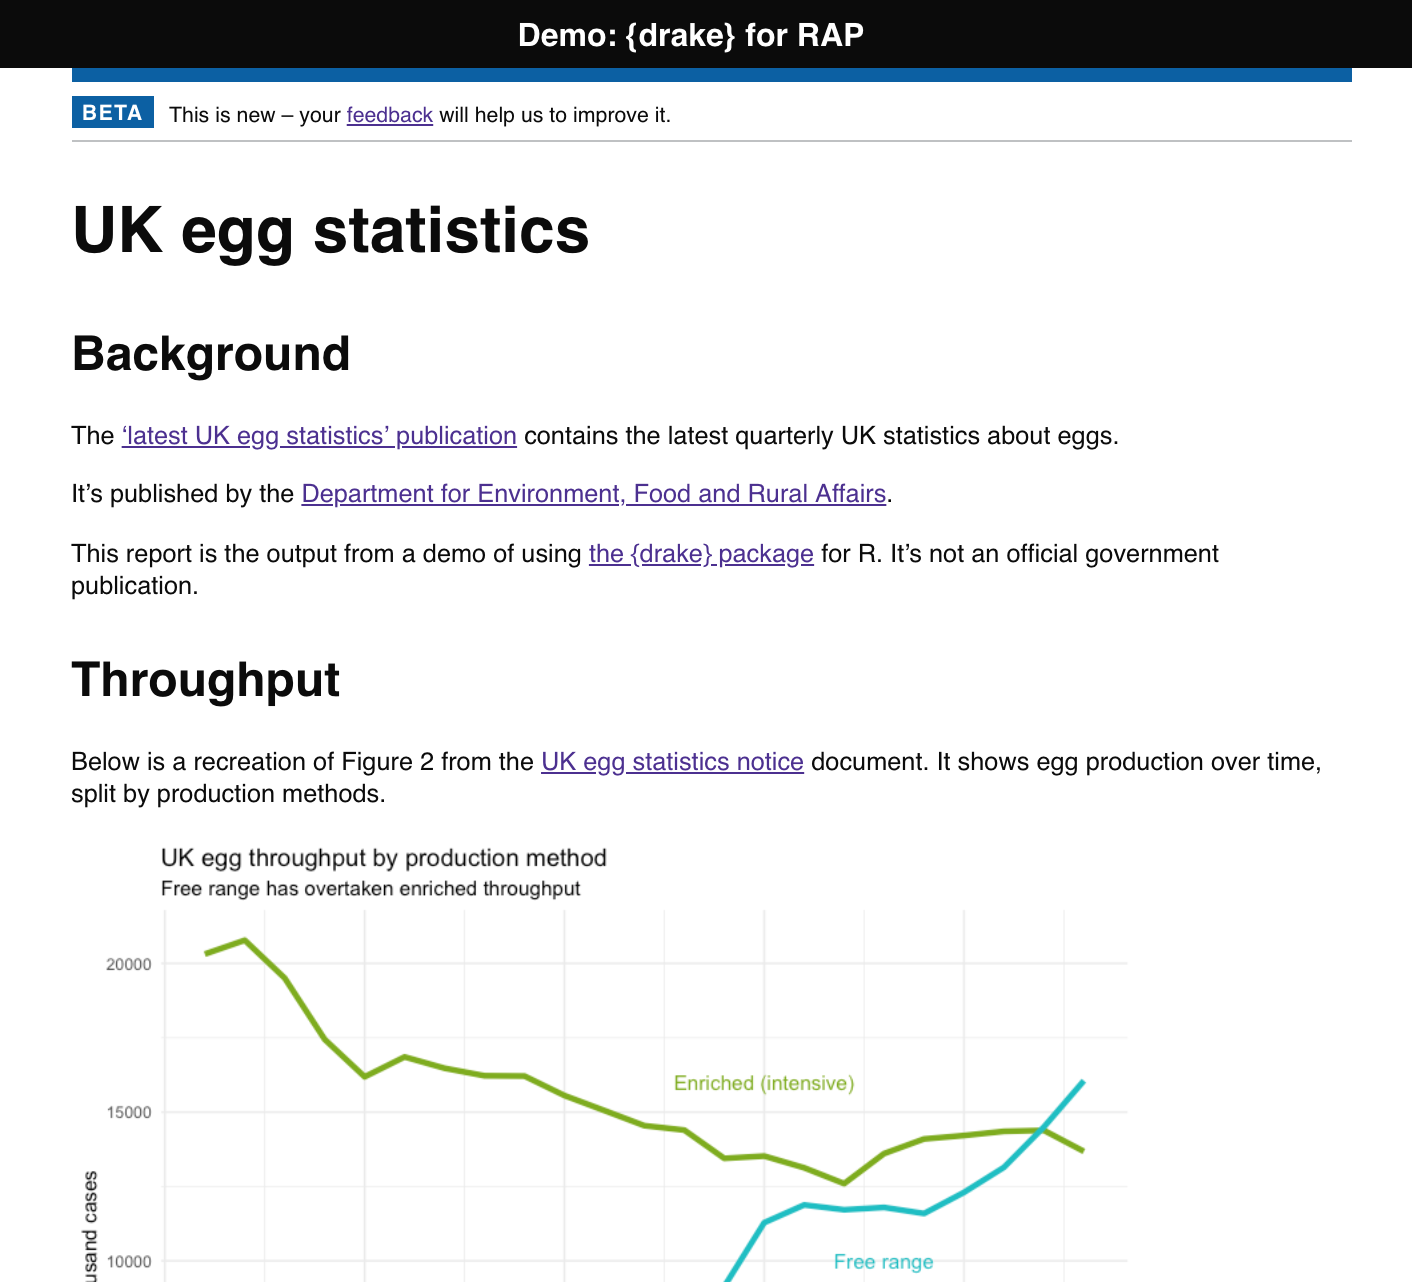 A screenshot of the top section of the demo report, with the title 'UK egg statistics' and sections for 'background' and 'throughput'. The top of a chart tracking egg production is visible.